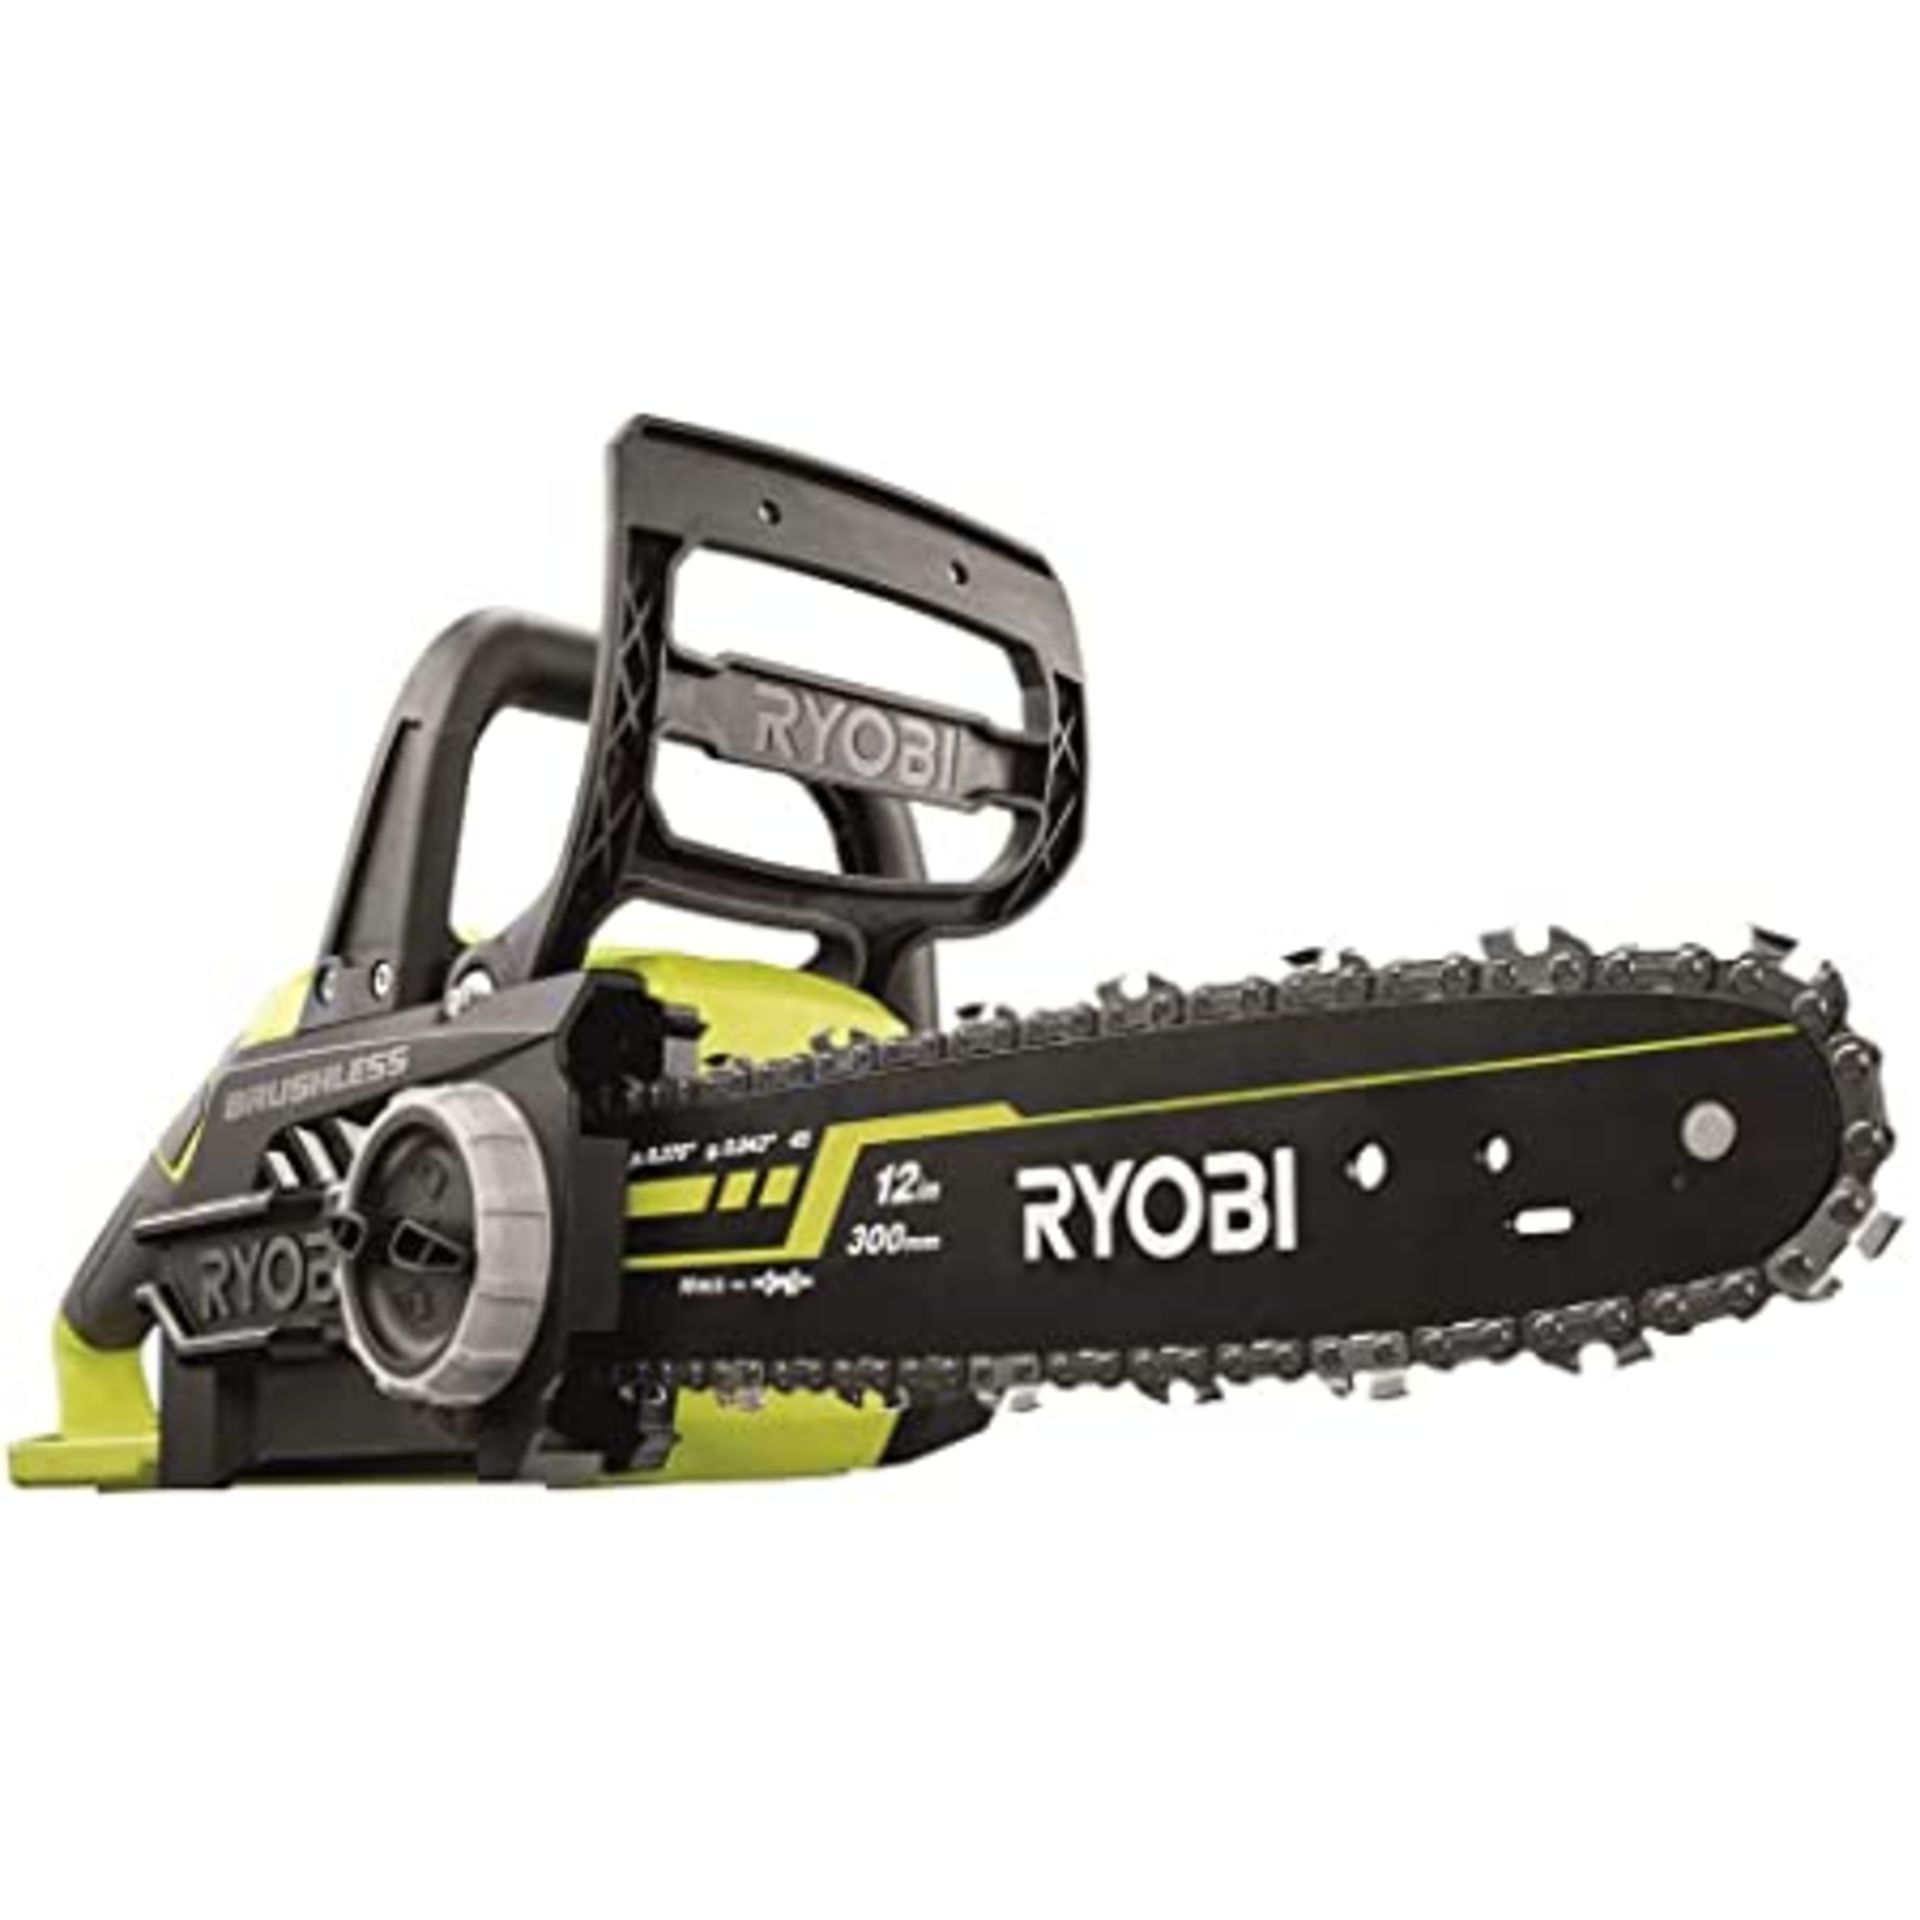 (P9) 1x Ryobi One+ Brushless 18V Cordless Chainsaw RRP £160. (With Battery & Charger) - Image 2 of 8